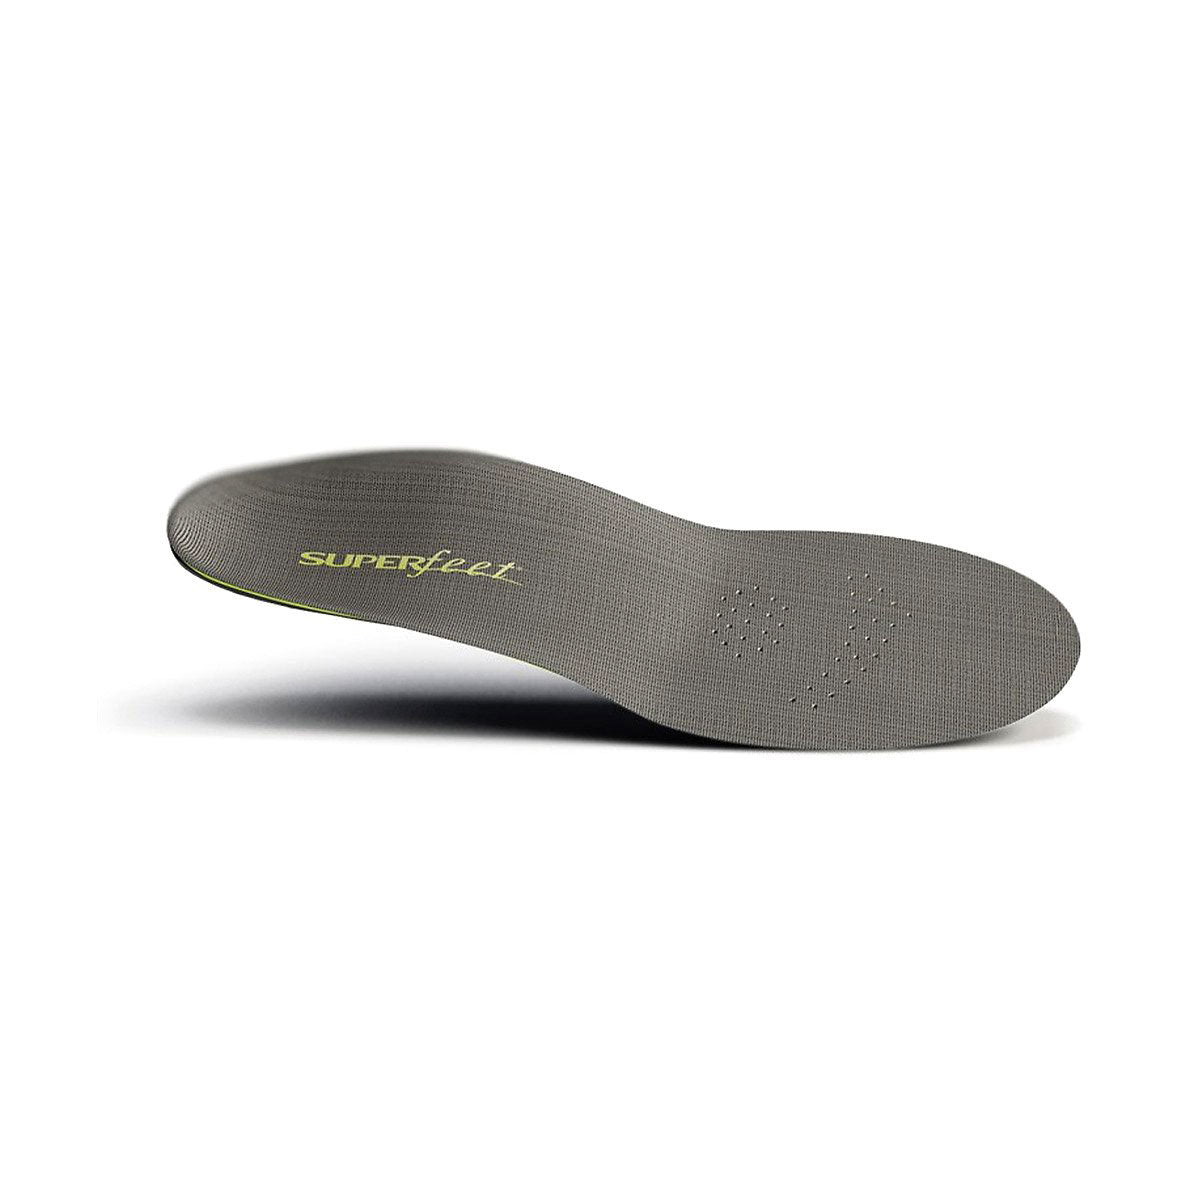 Superfeet Carbon Insoles